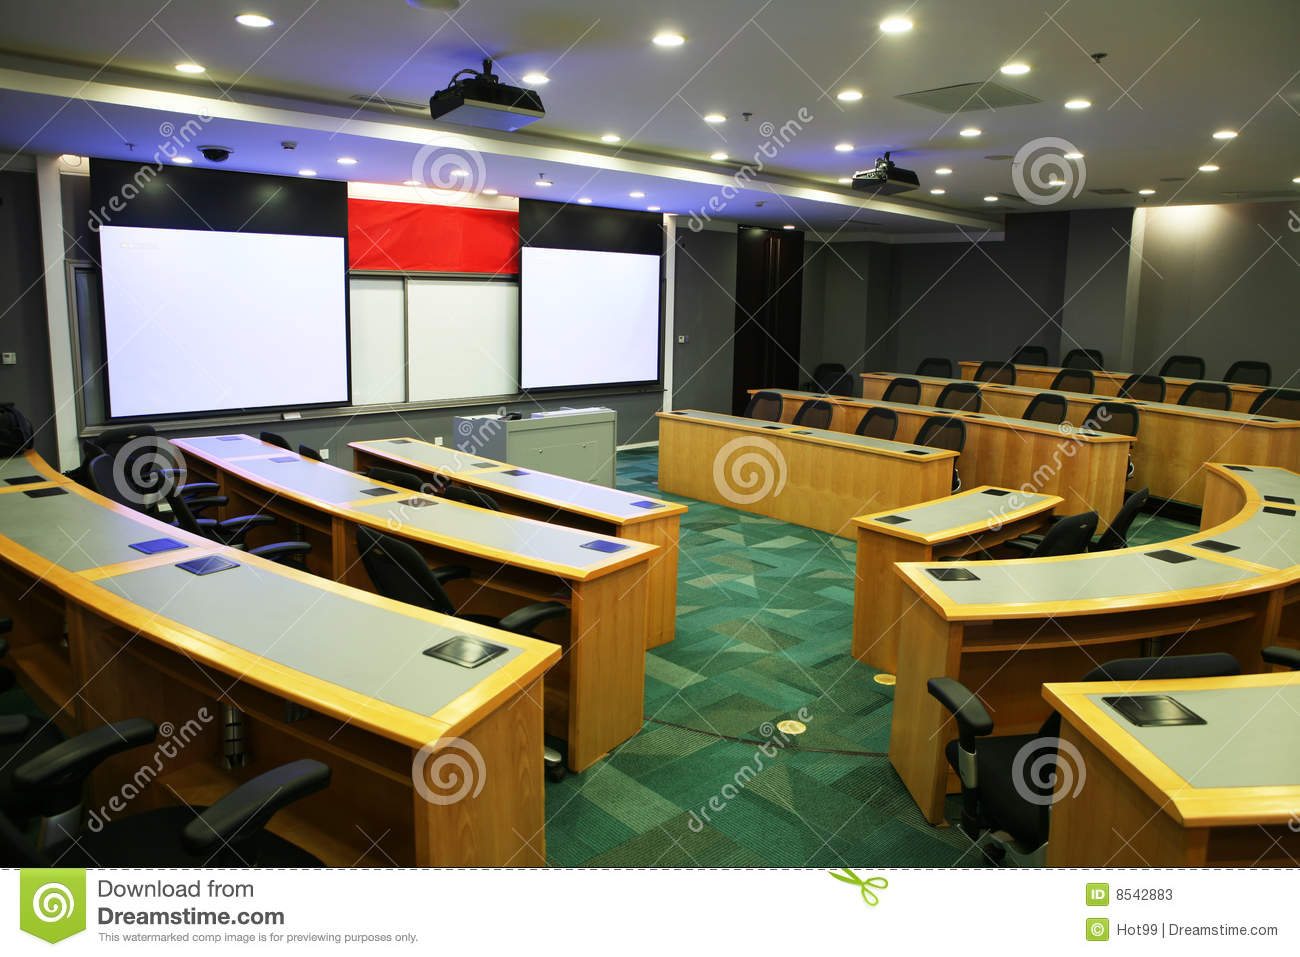 Modern Classroom With Projector Stock Photos  Image 8542883